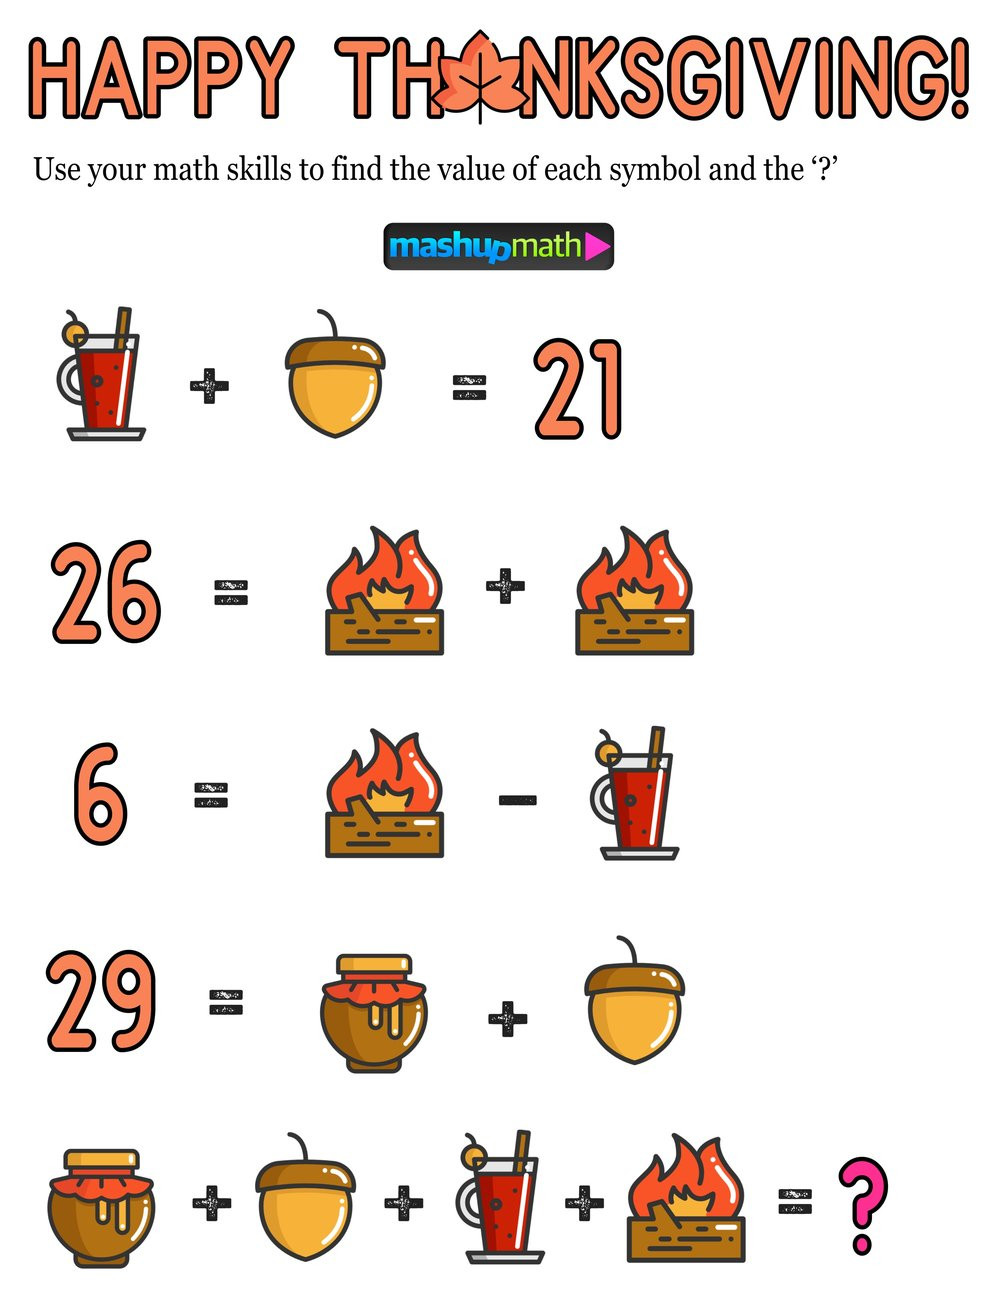 Thanksgiving Math Worksheets Middle School 12 Thanksgiving Math Activities for Grades 1 8 — Mashup Math